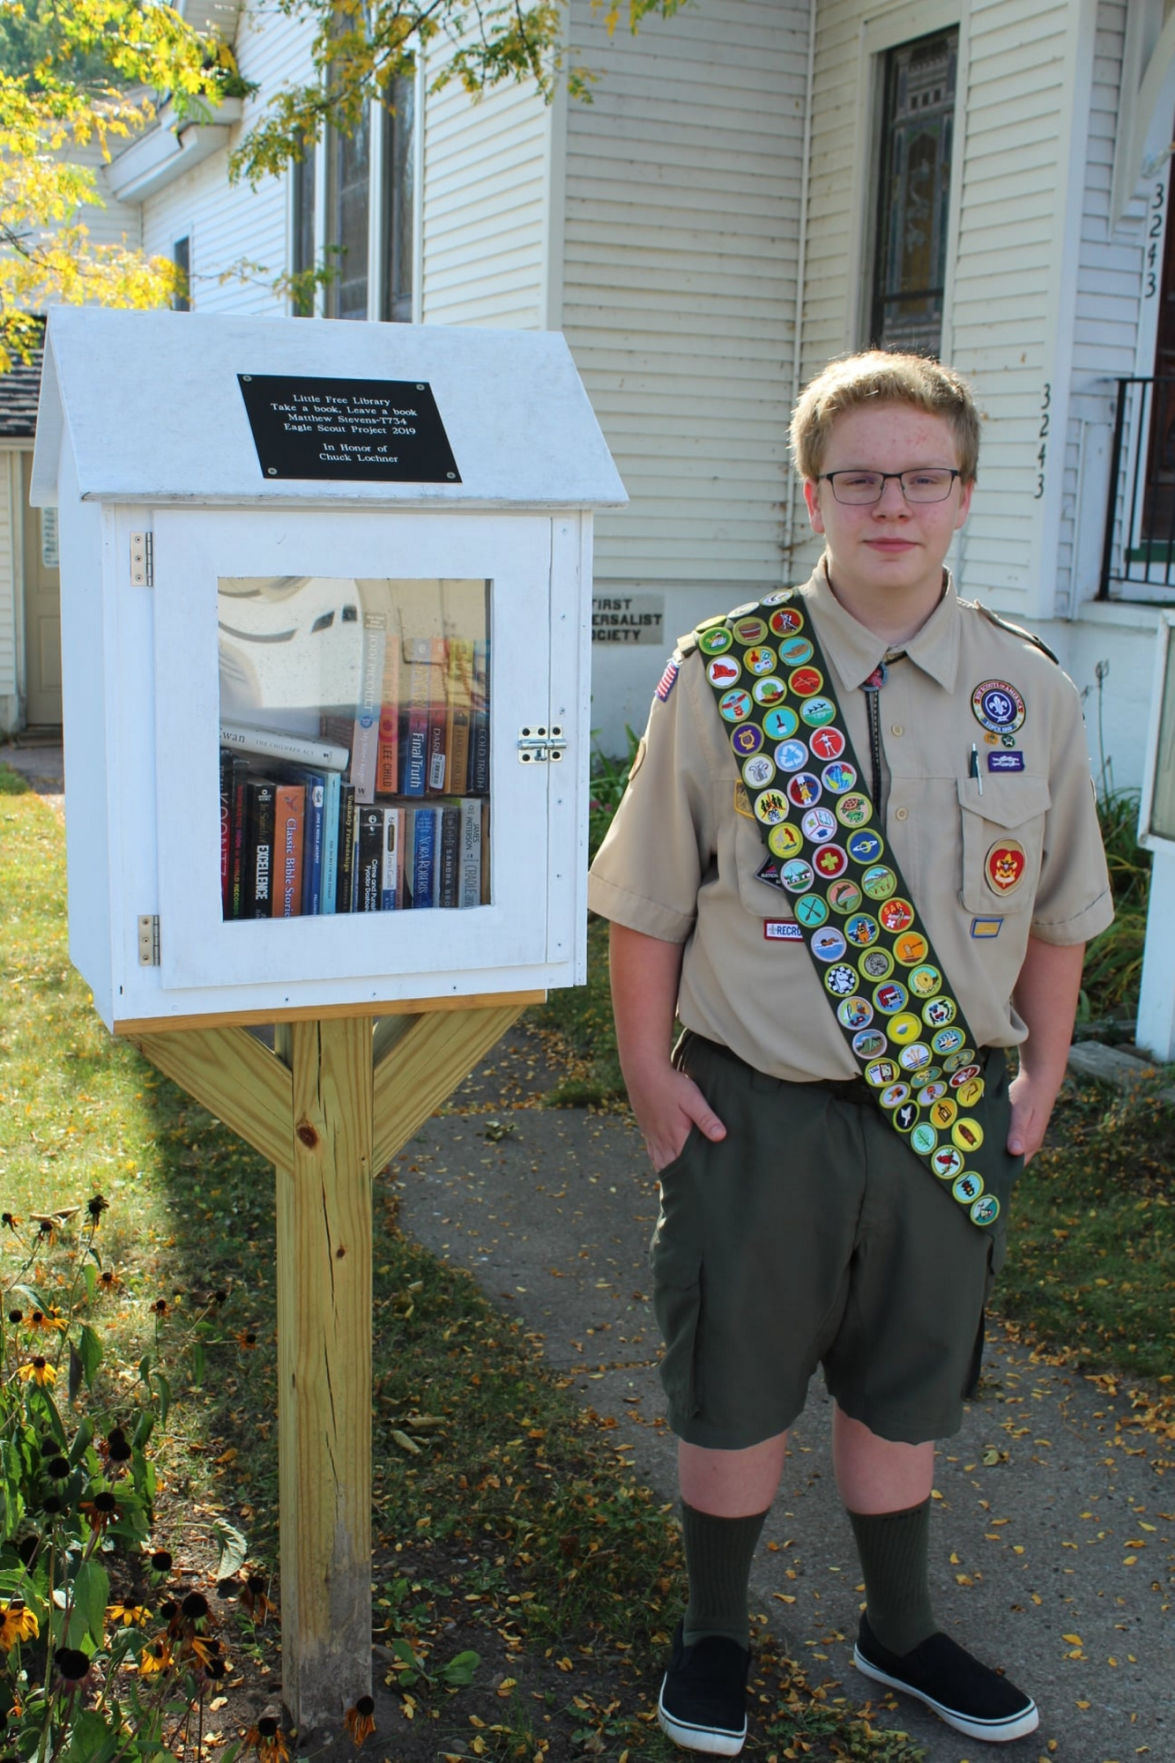 Central Square welcomes another Eagle Scout